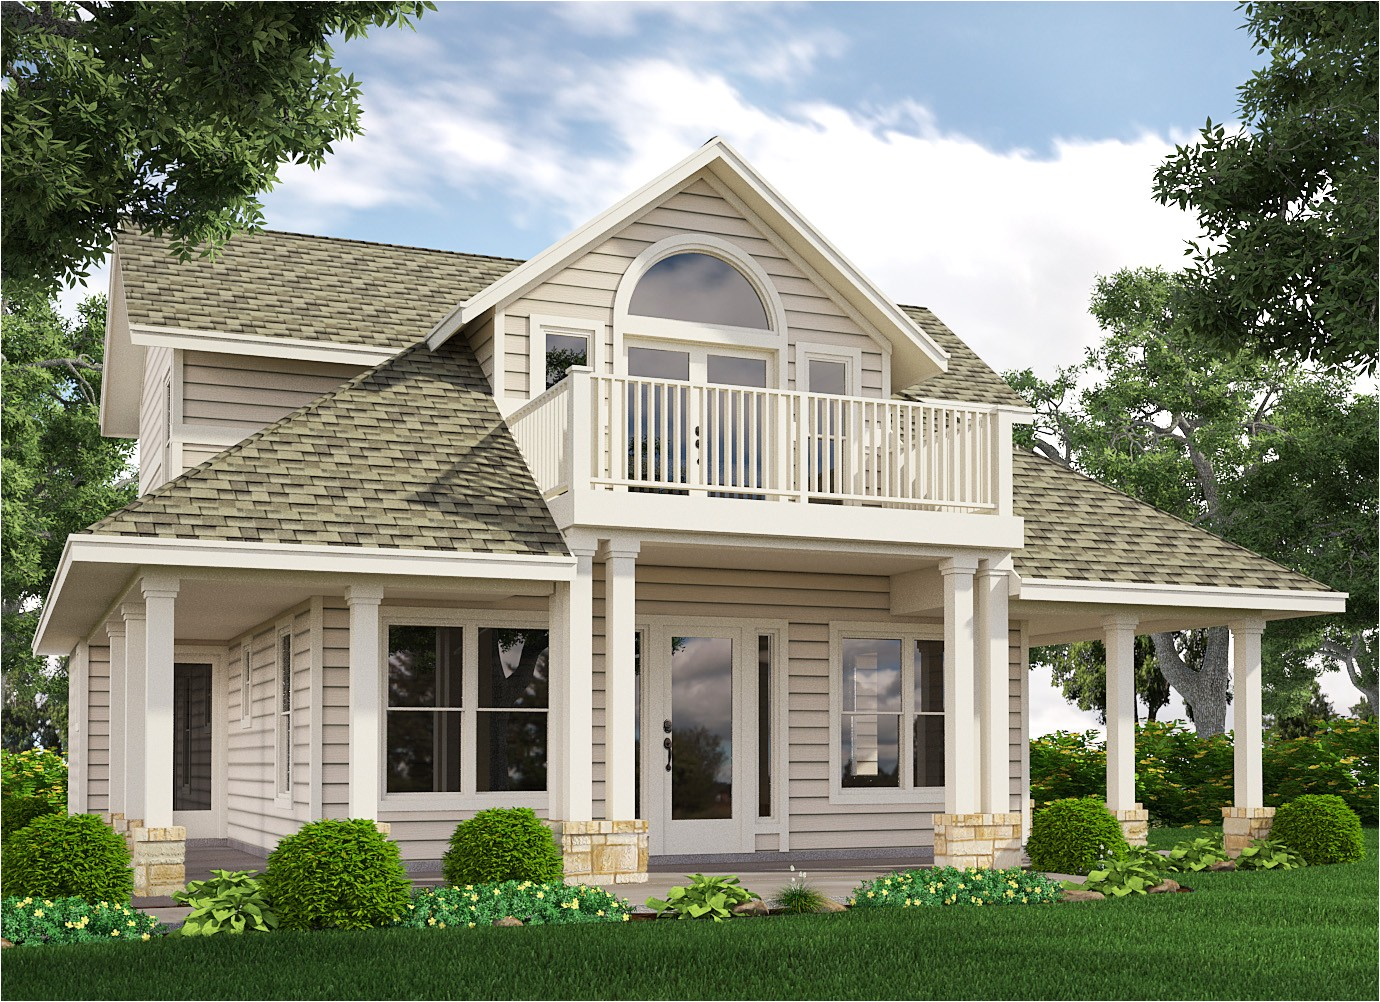 House Plans with Loft and Wrap Around Porch House Plans with Loft and Wrap Around Porch 28 Images